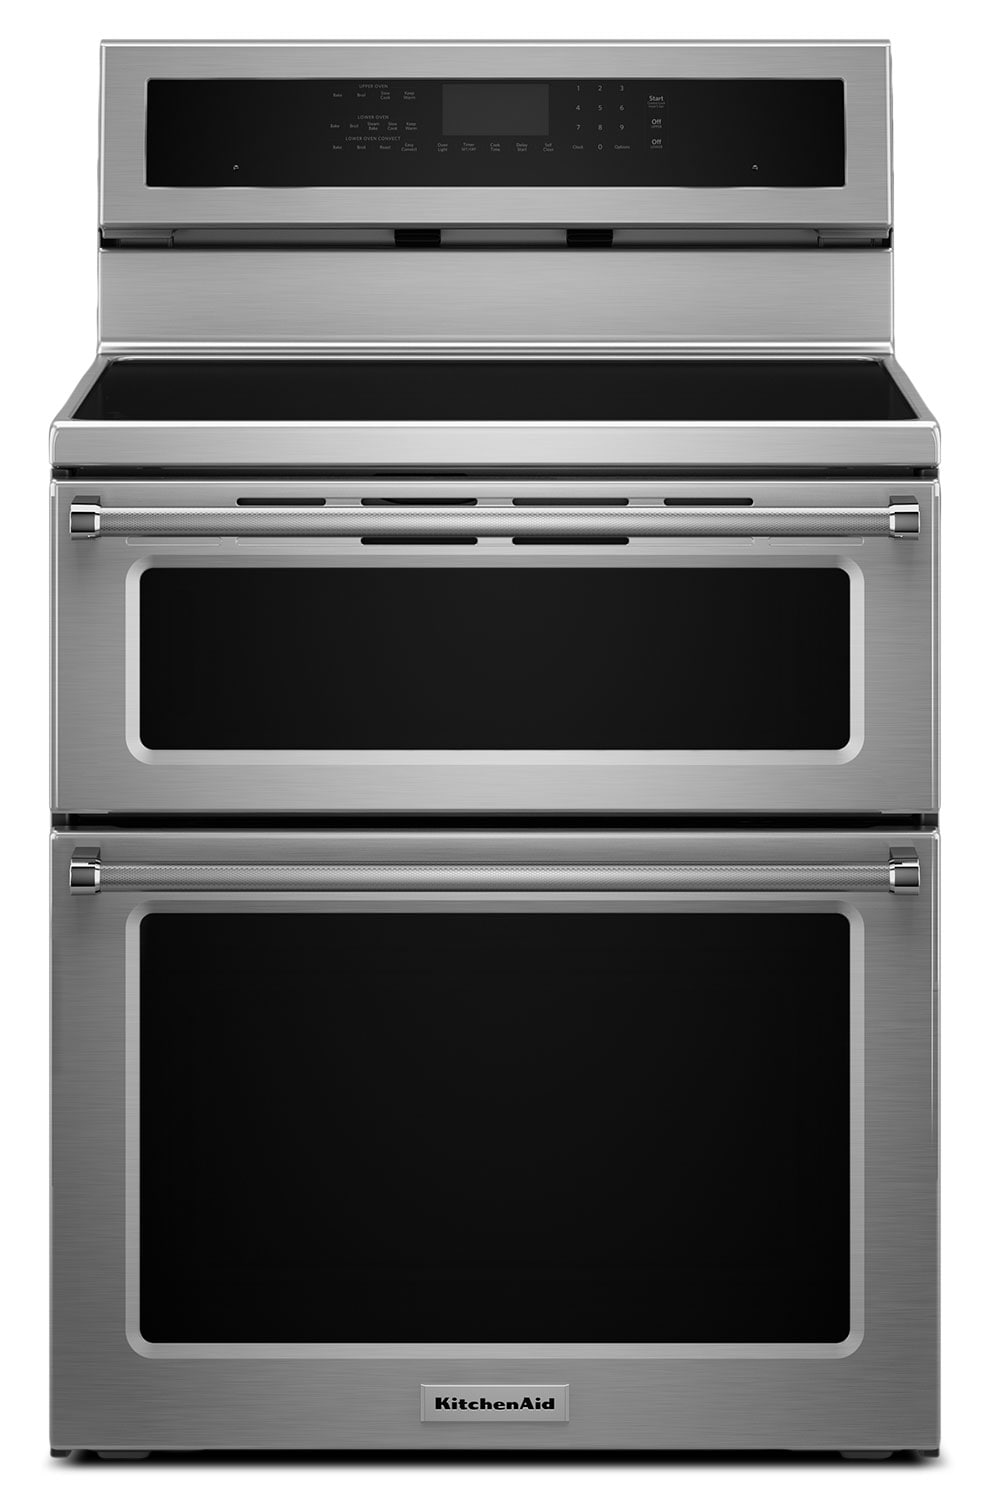 KitchenAid Stainless Steel Freestanding Electric Double Range (6.7 Cu. Ft.) - YKFID500ESS